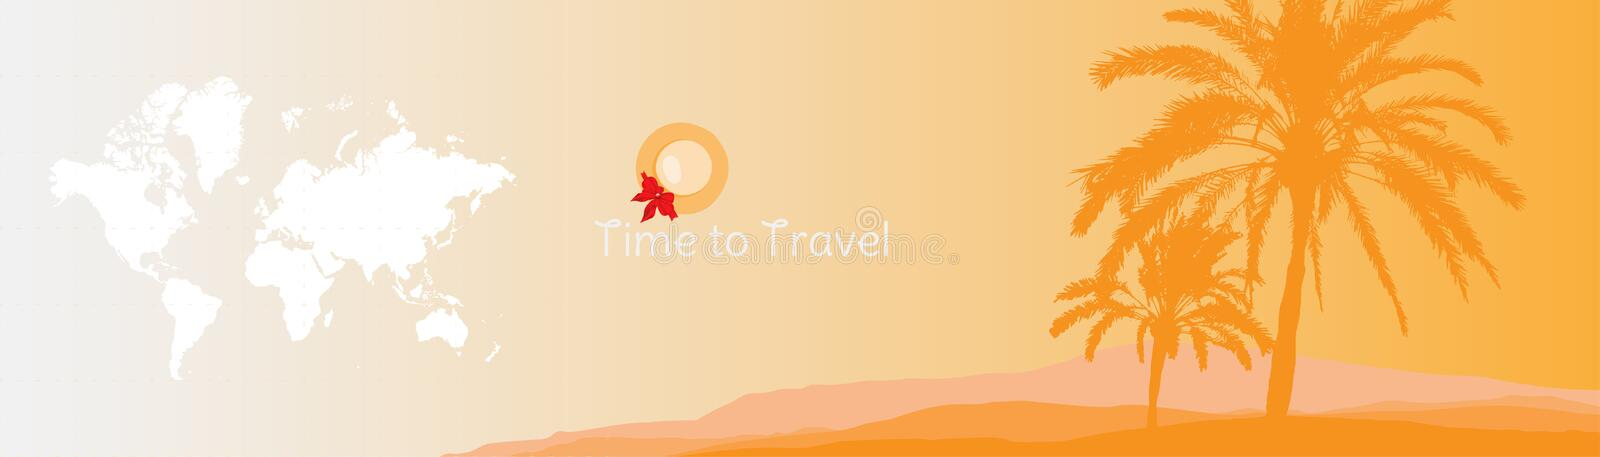 Time to Travel. Banner with silhouettes of tropical palm trees and world map on a orange background for tourism. vector illustration